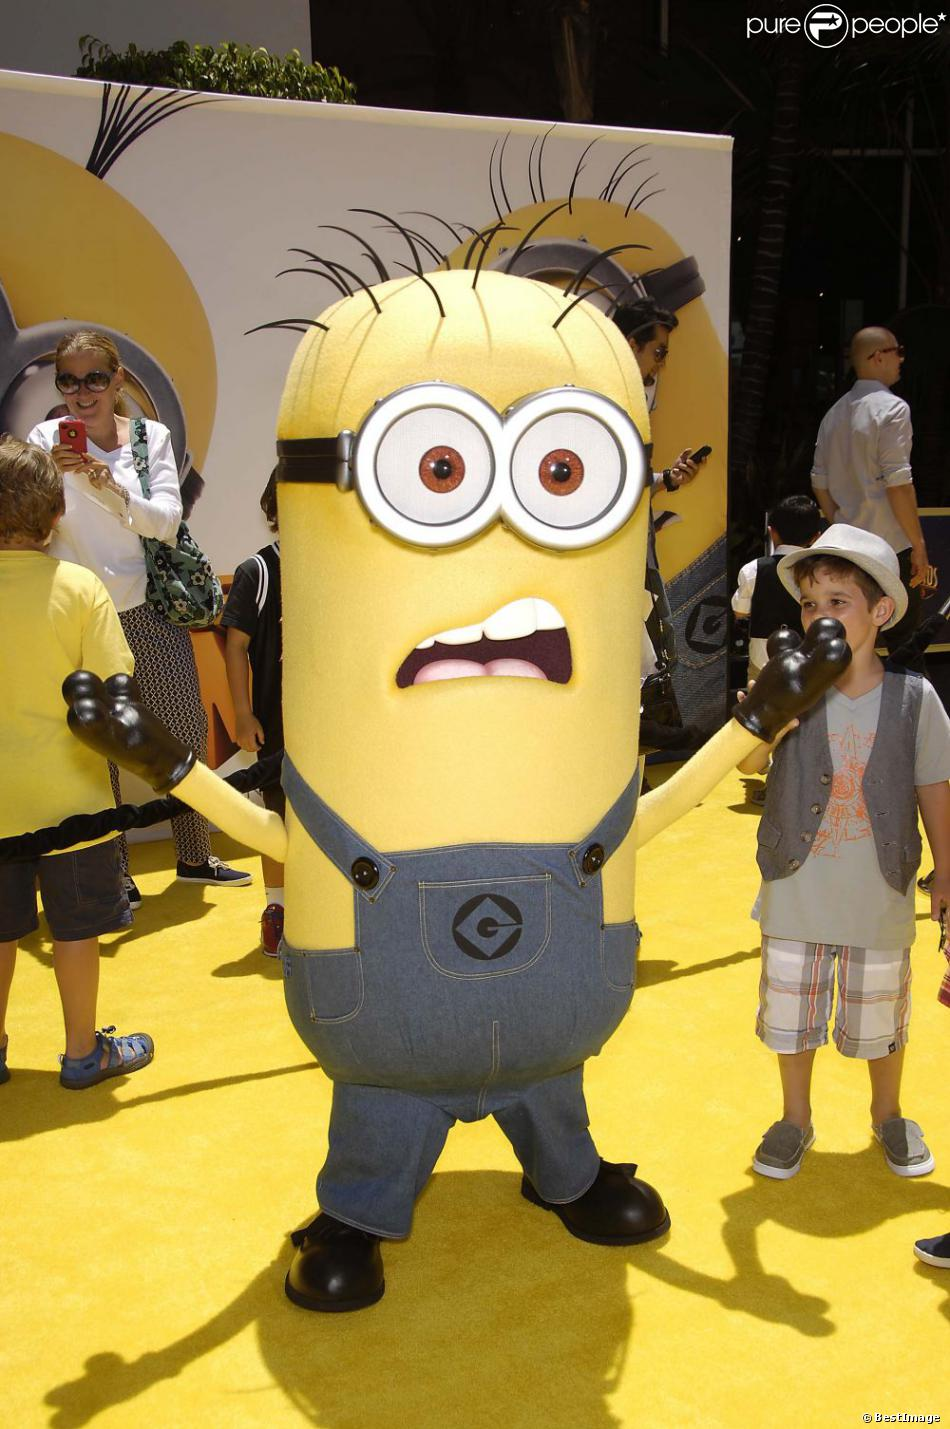 Un minion la premi re de moi moche et m chant 2 los angeles le 22 juin 2013 - Mechant minion ...